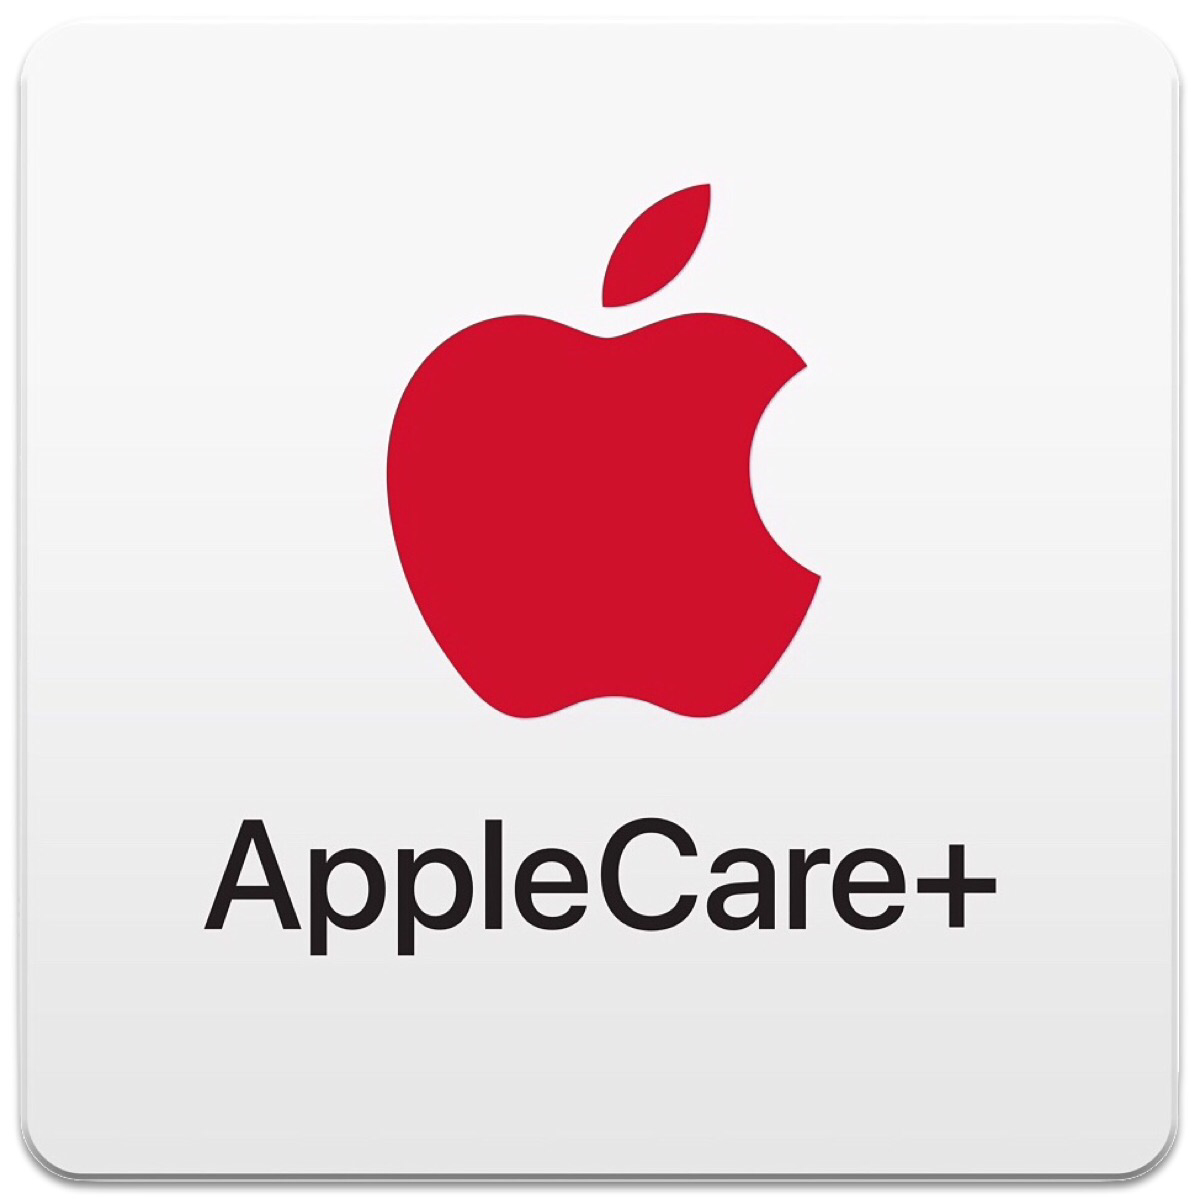 Get AppleCare+ for your iPhone X today.